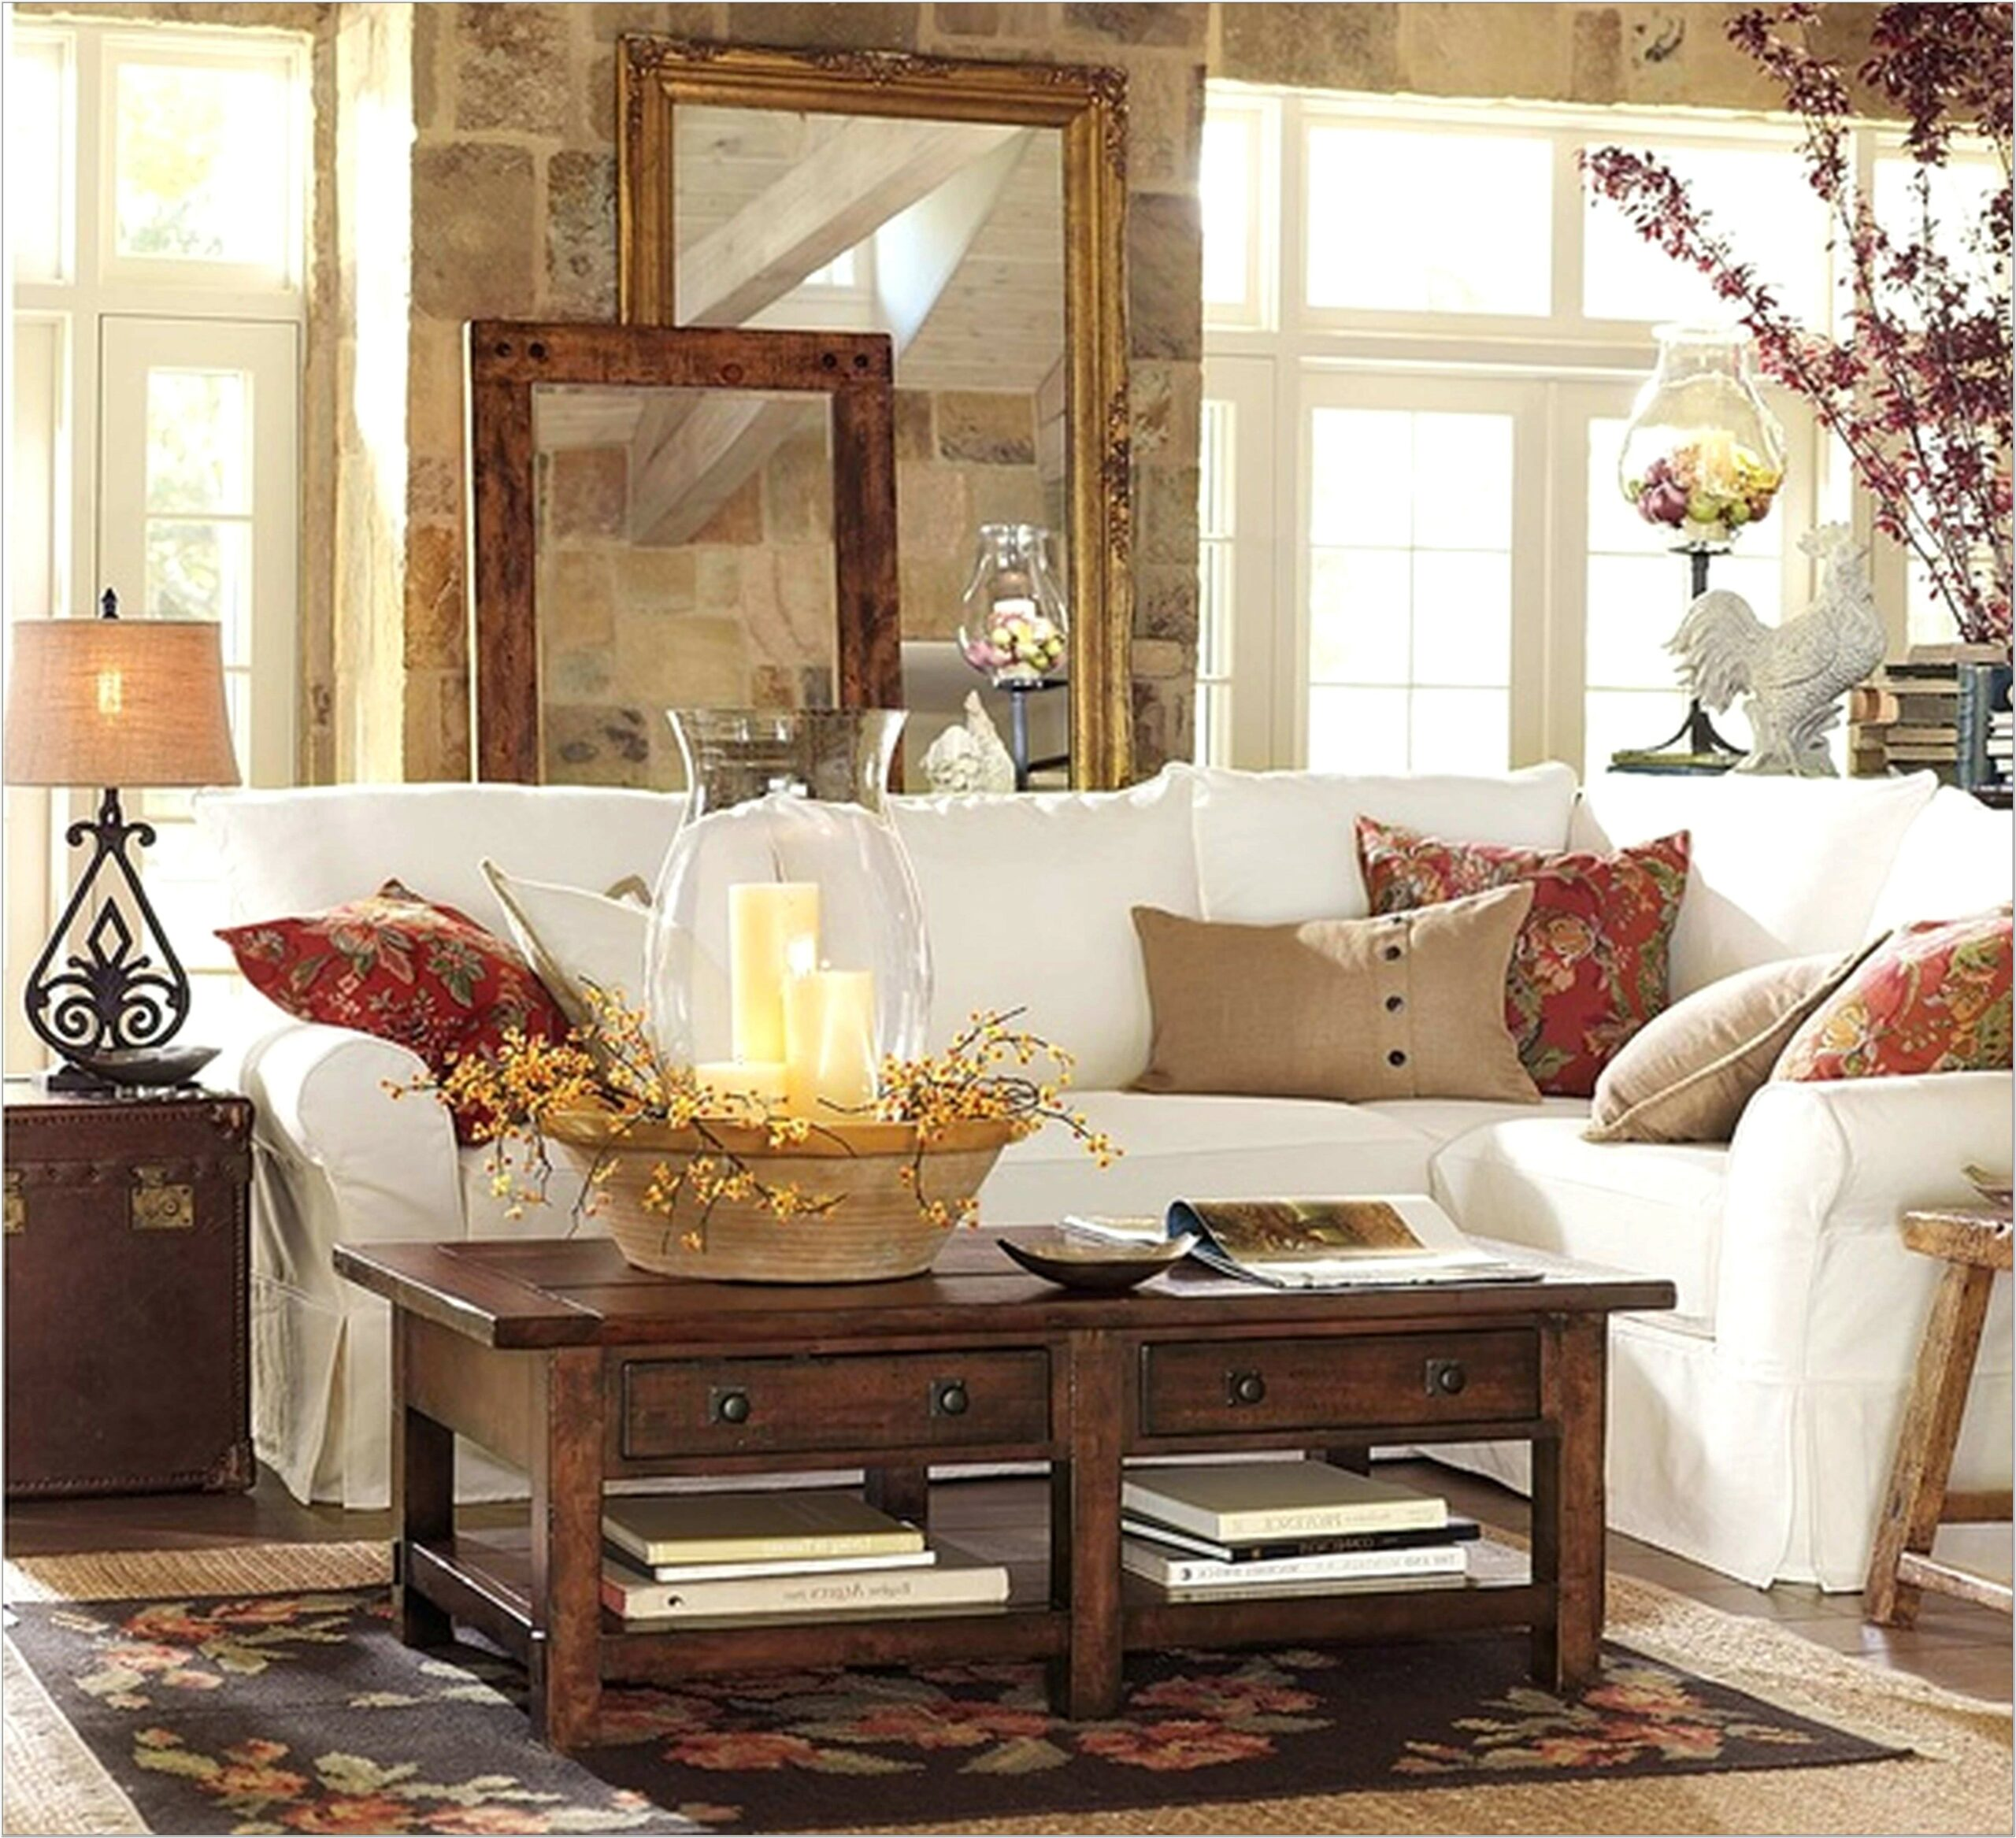 Living Room Pottery Barn Ideas